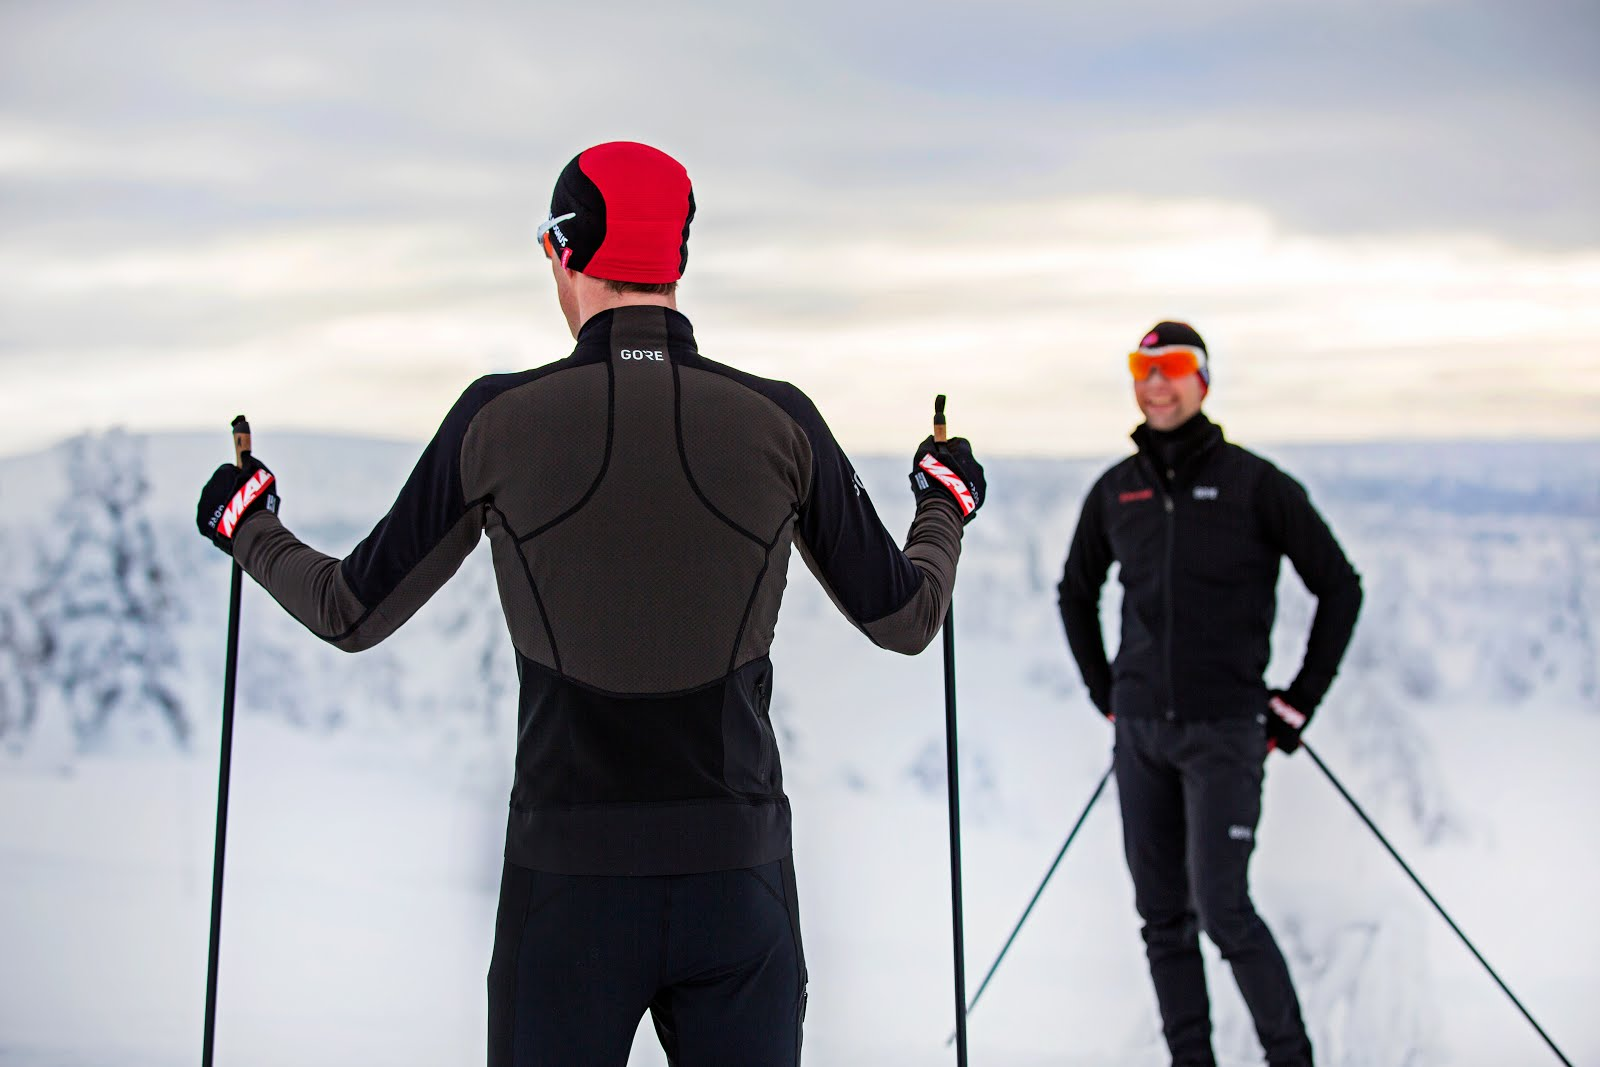 58d37dc81e1e6 Gore Wear X7 Review: Totally Windproof, Very Breathable, Warm and Light  Nordic Ski and Run Apparel